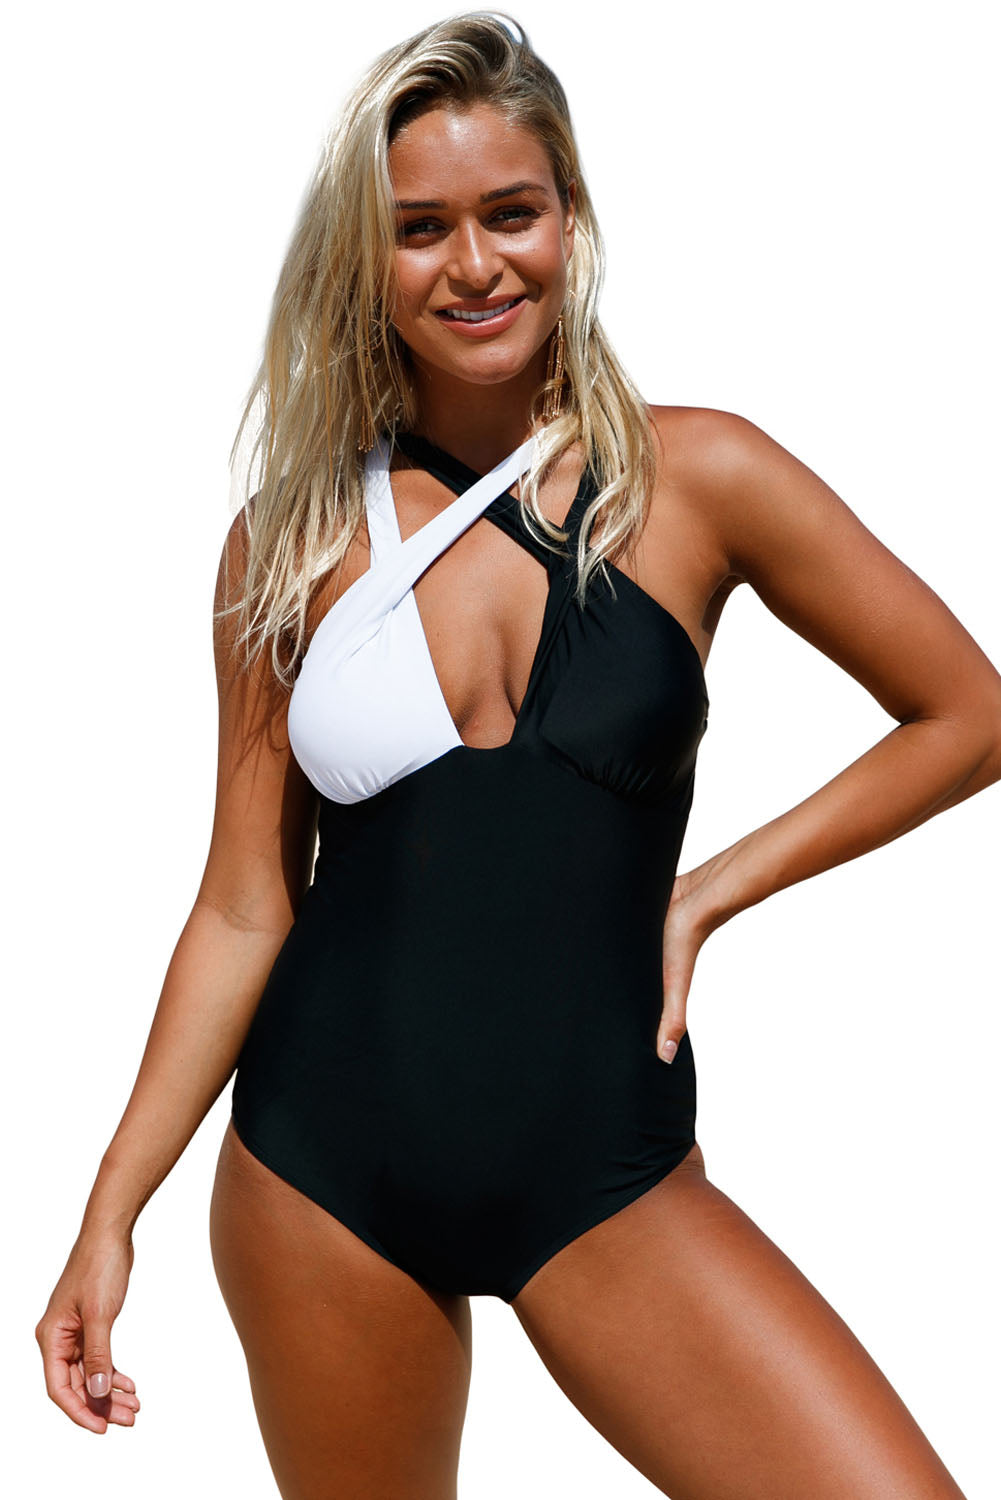 Chicloth Black White Double Cross Strap One Piece Swimsuit - S / Black White Dearlover